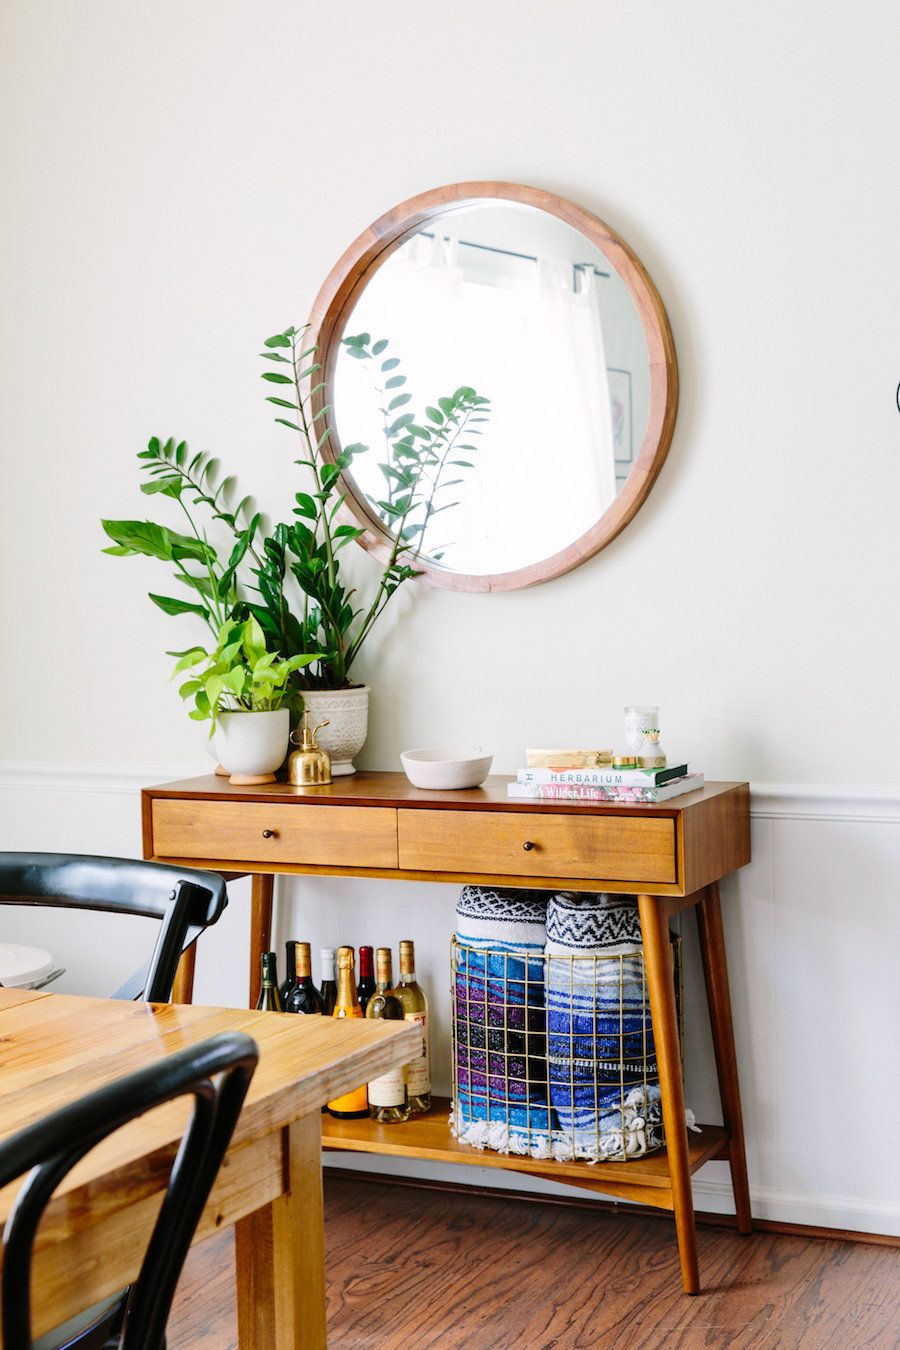 Eclectic Console Table Styled With Wine And Blankets And Plants To Decorate  A Living Room